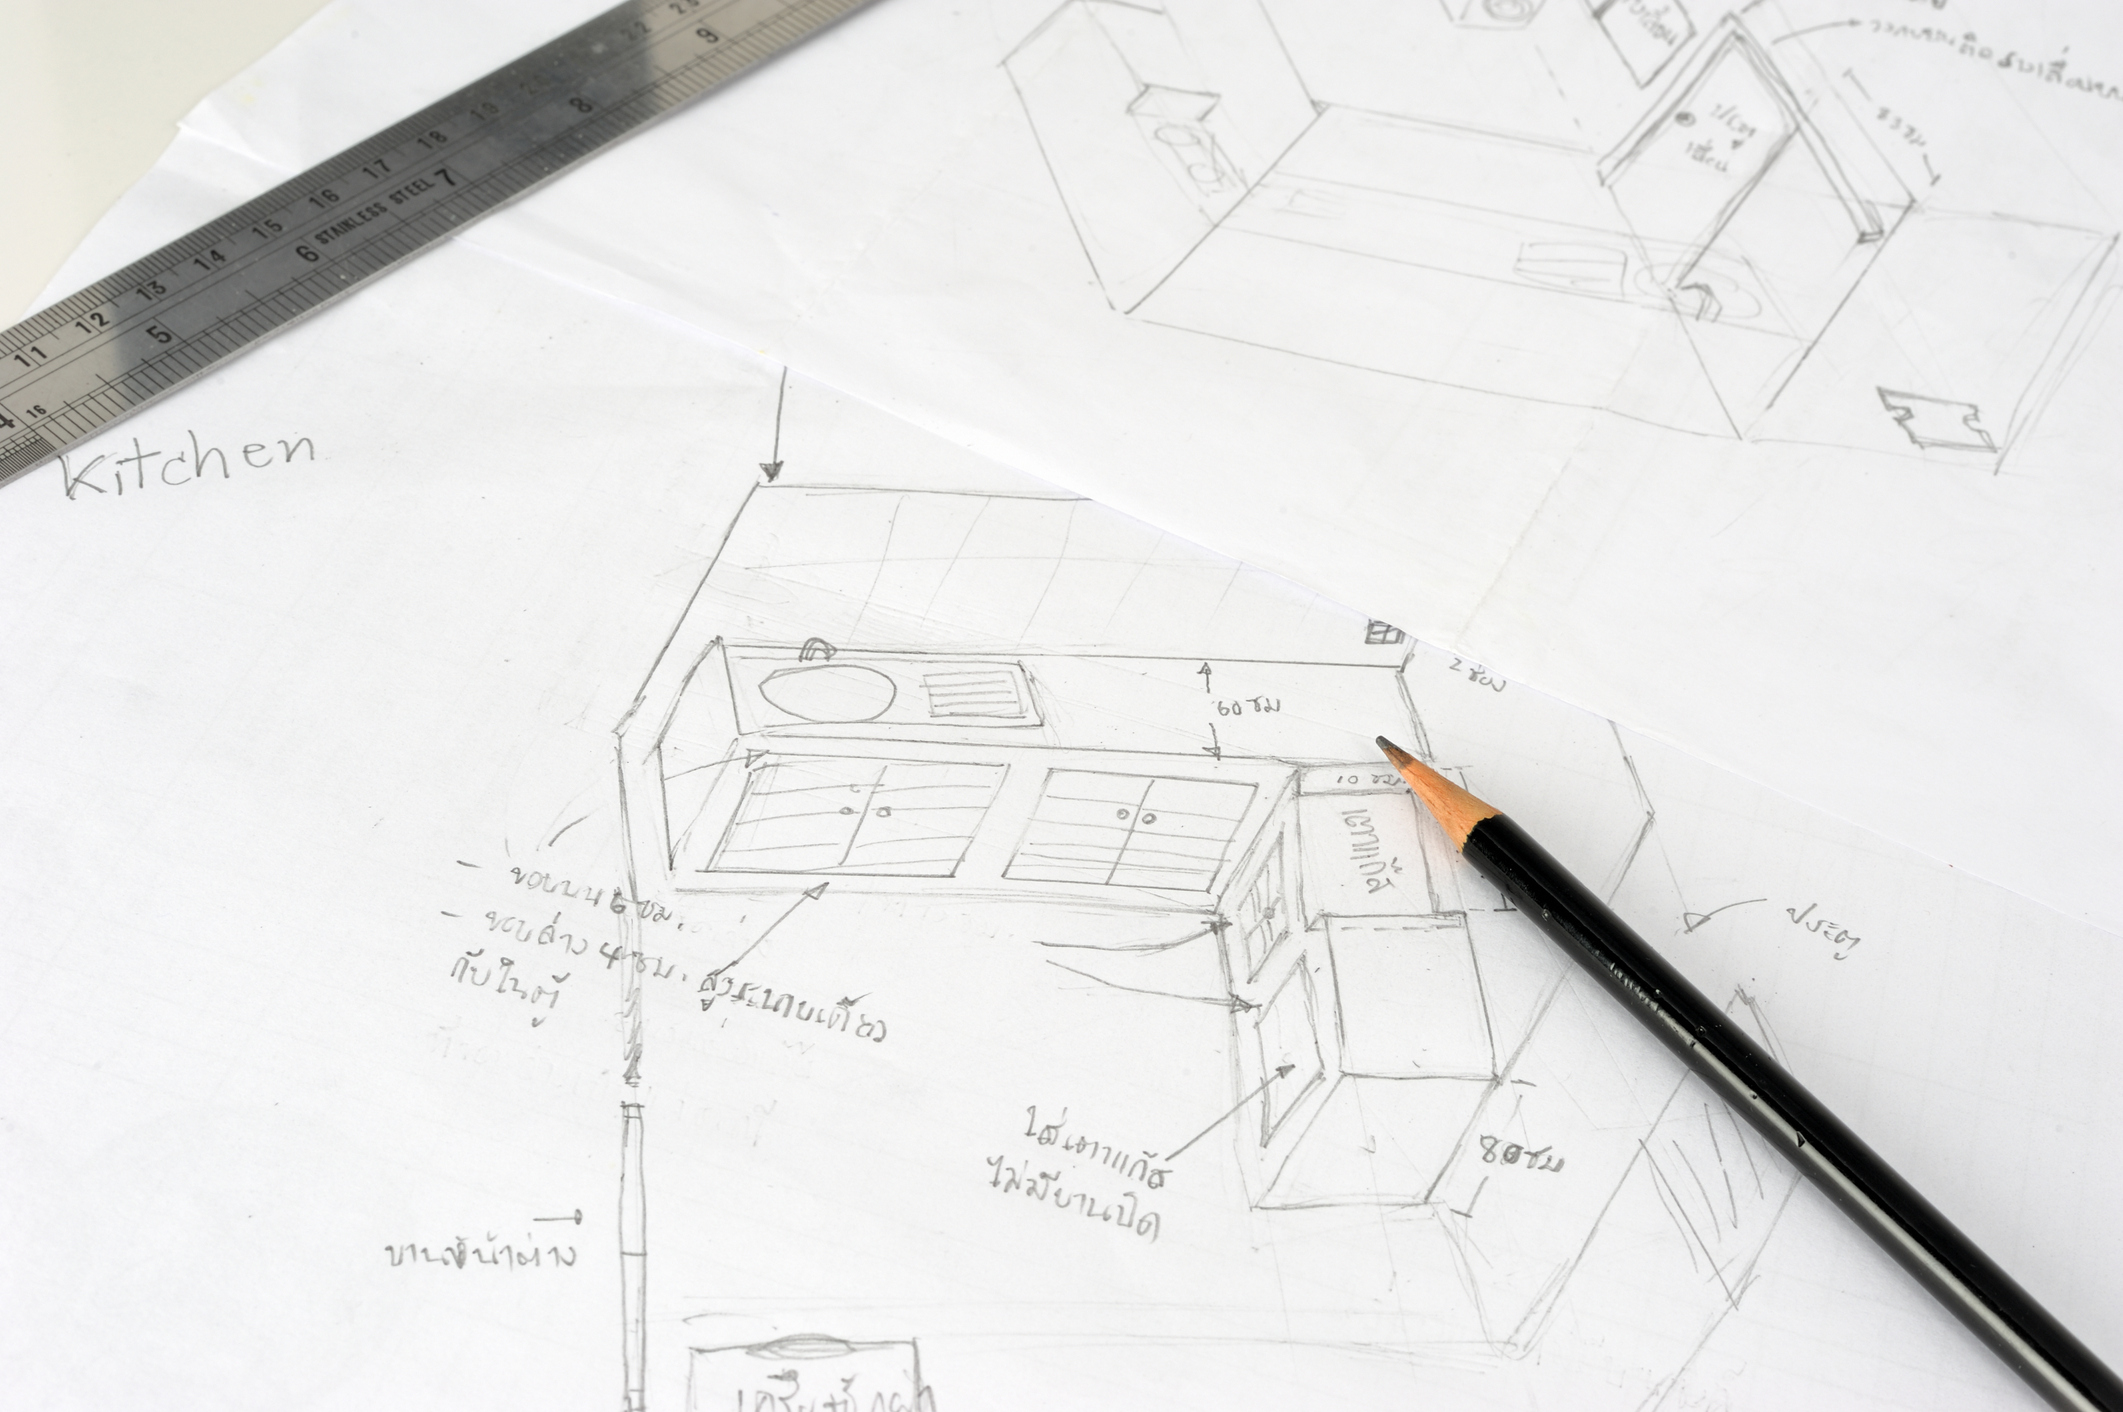 design + Edesign - Lets make magic! Local or Live on the other side of the ocean? Not a problem we can e-design your home as if we were there! We use today's best technology- we can deliver your dream home from near or afar!